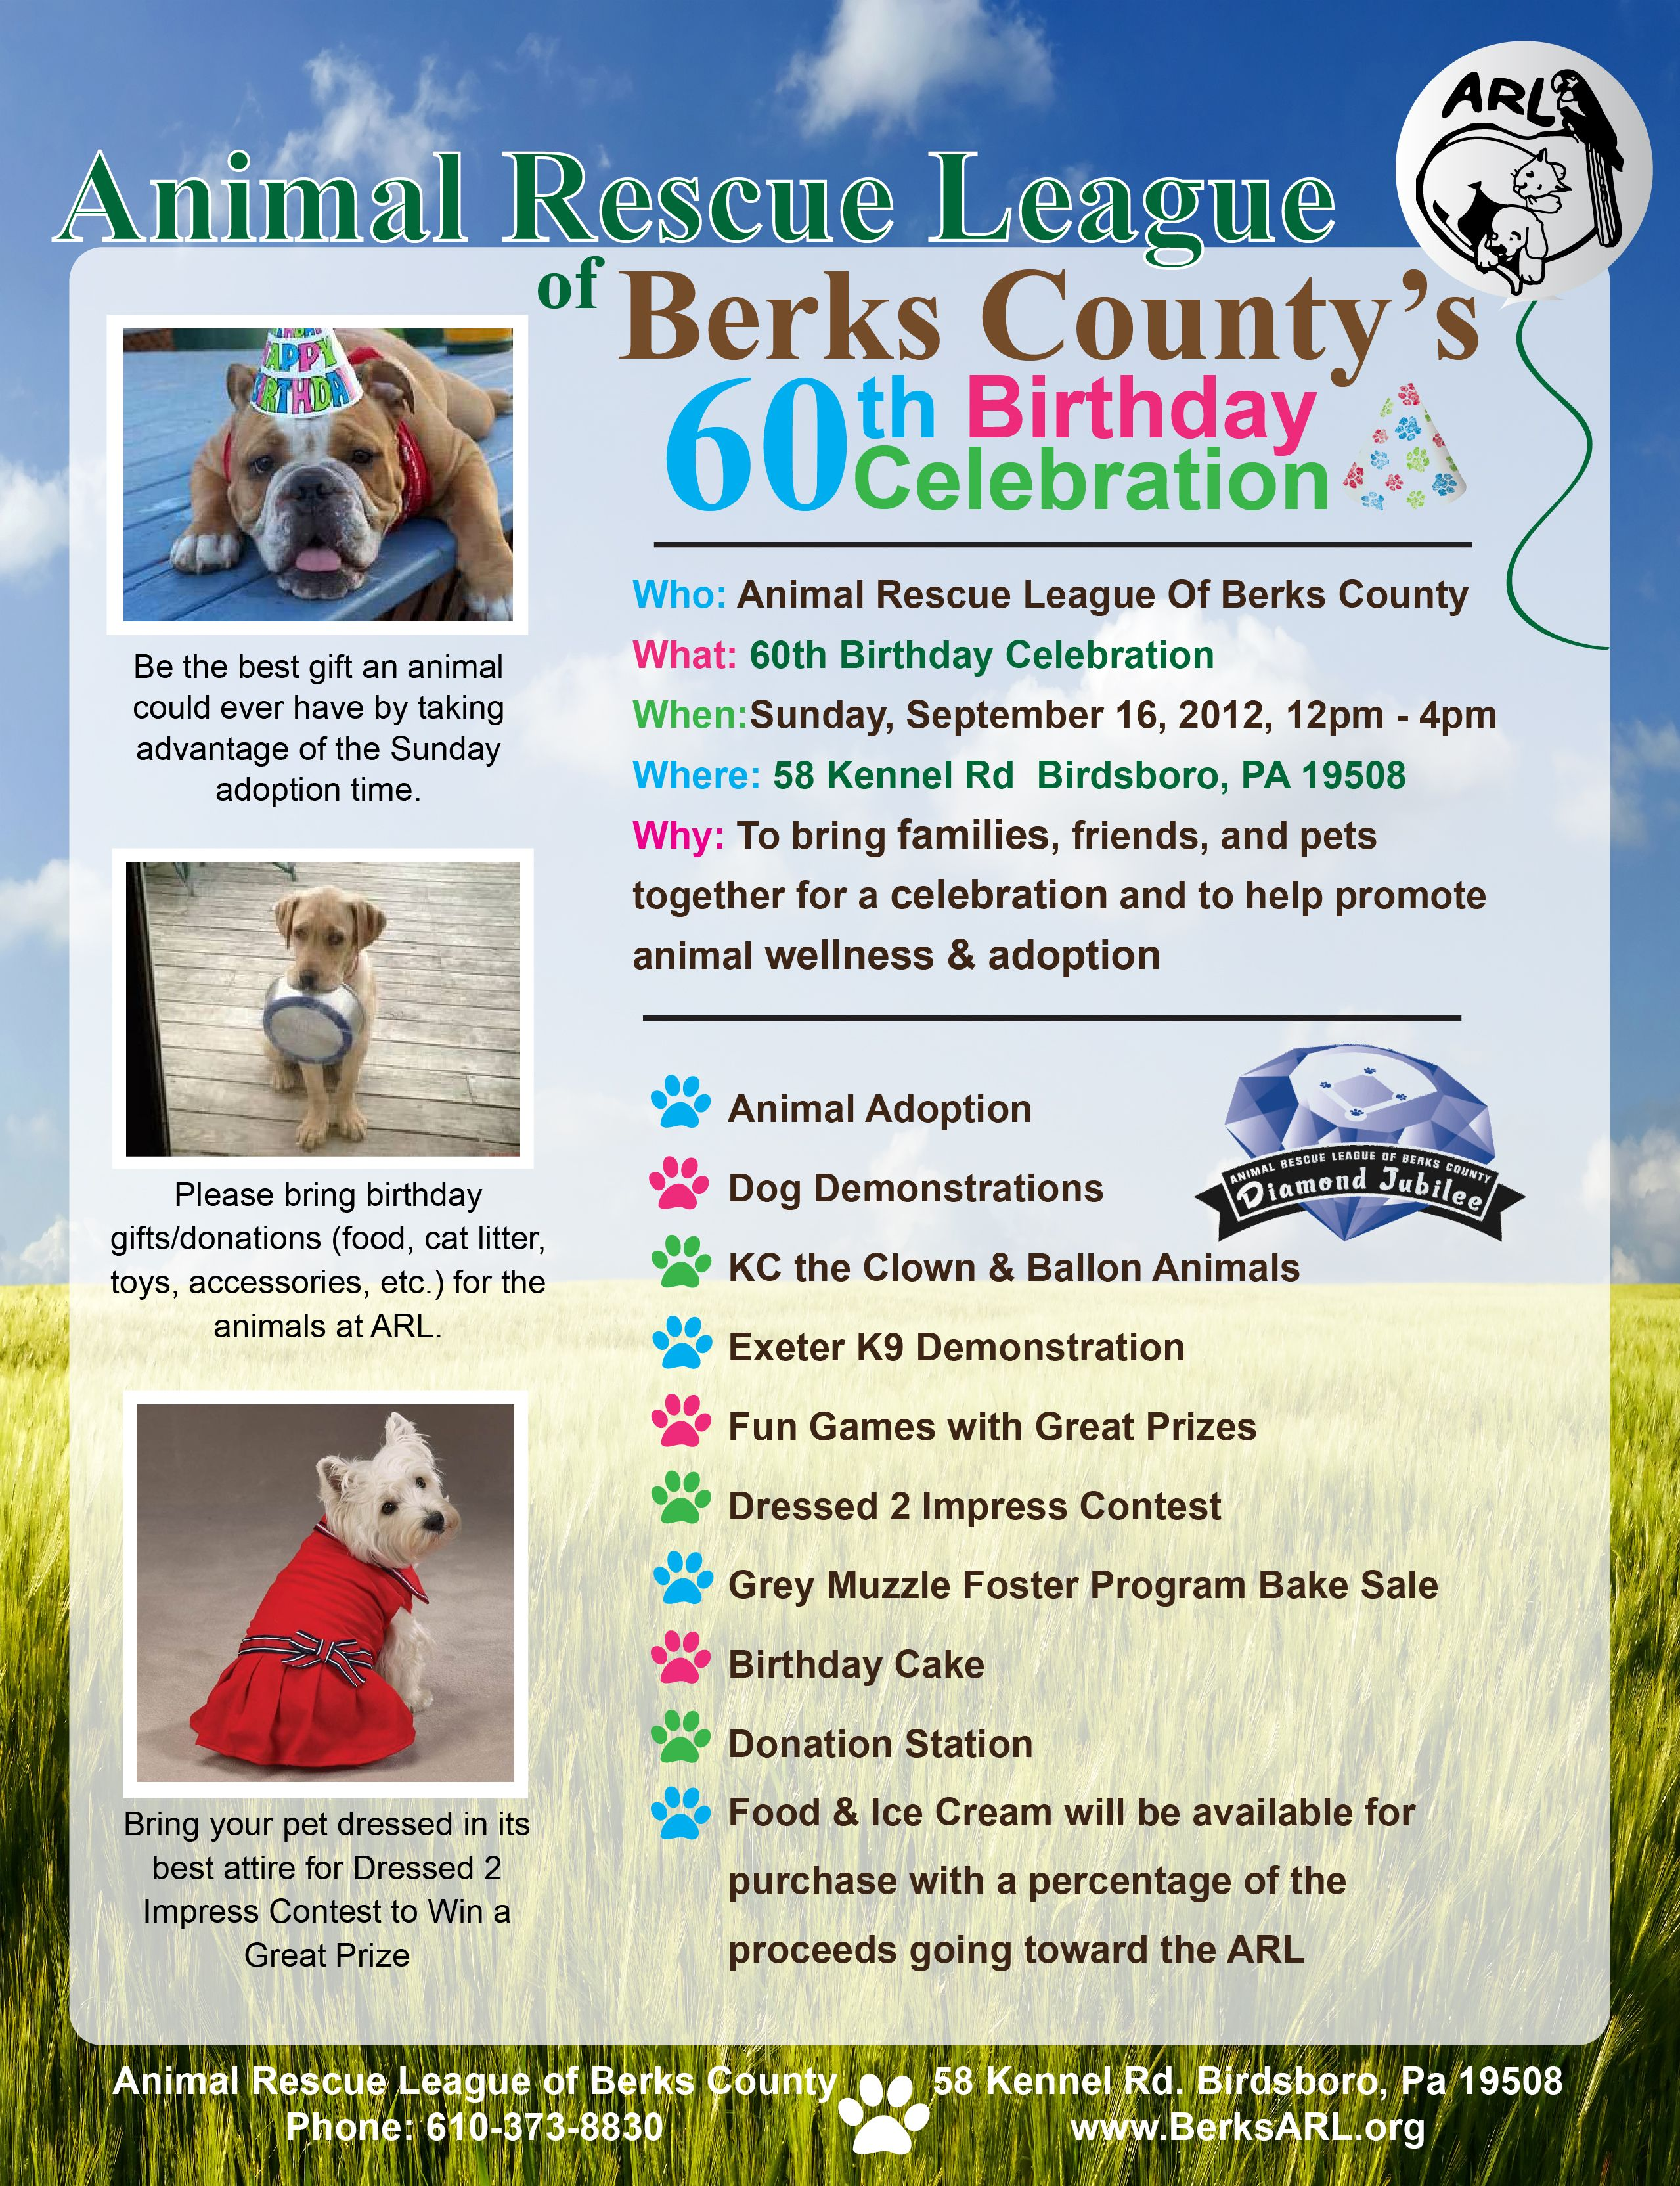 The Animal Rescue League Celebrates Its 60th Anniversary This Year Come To The Party On Sept 16 At The Shelter Animal Rescue League Animal Rescue Rescue